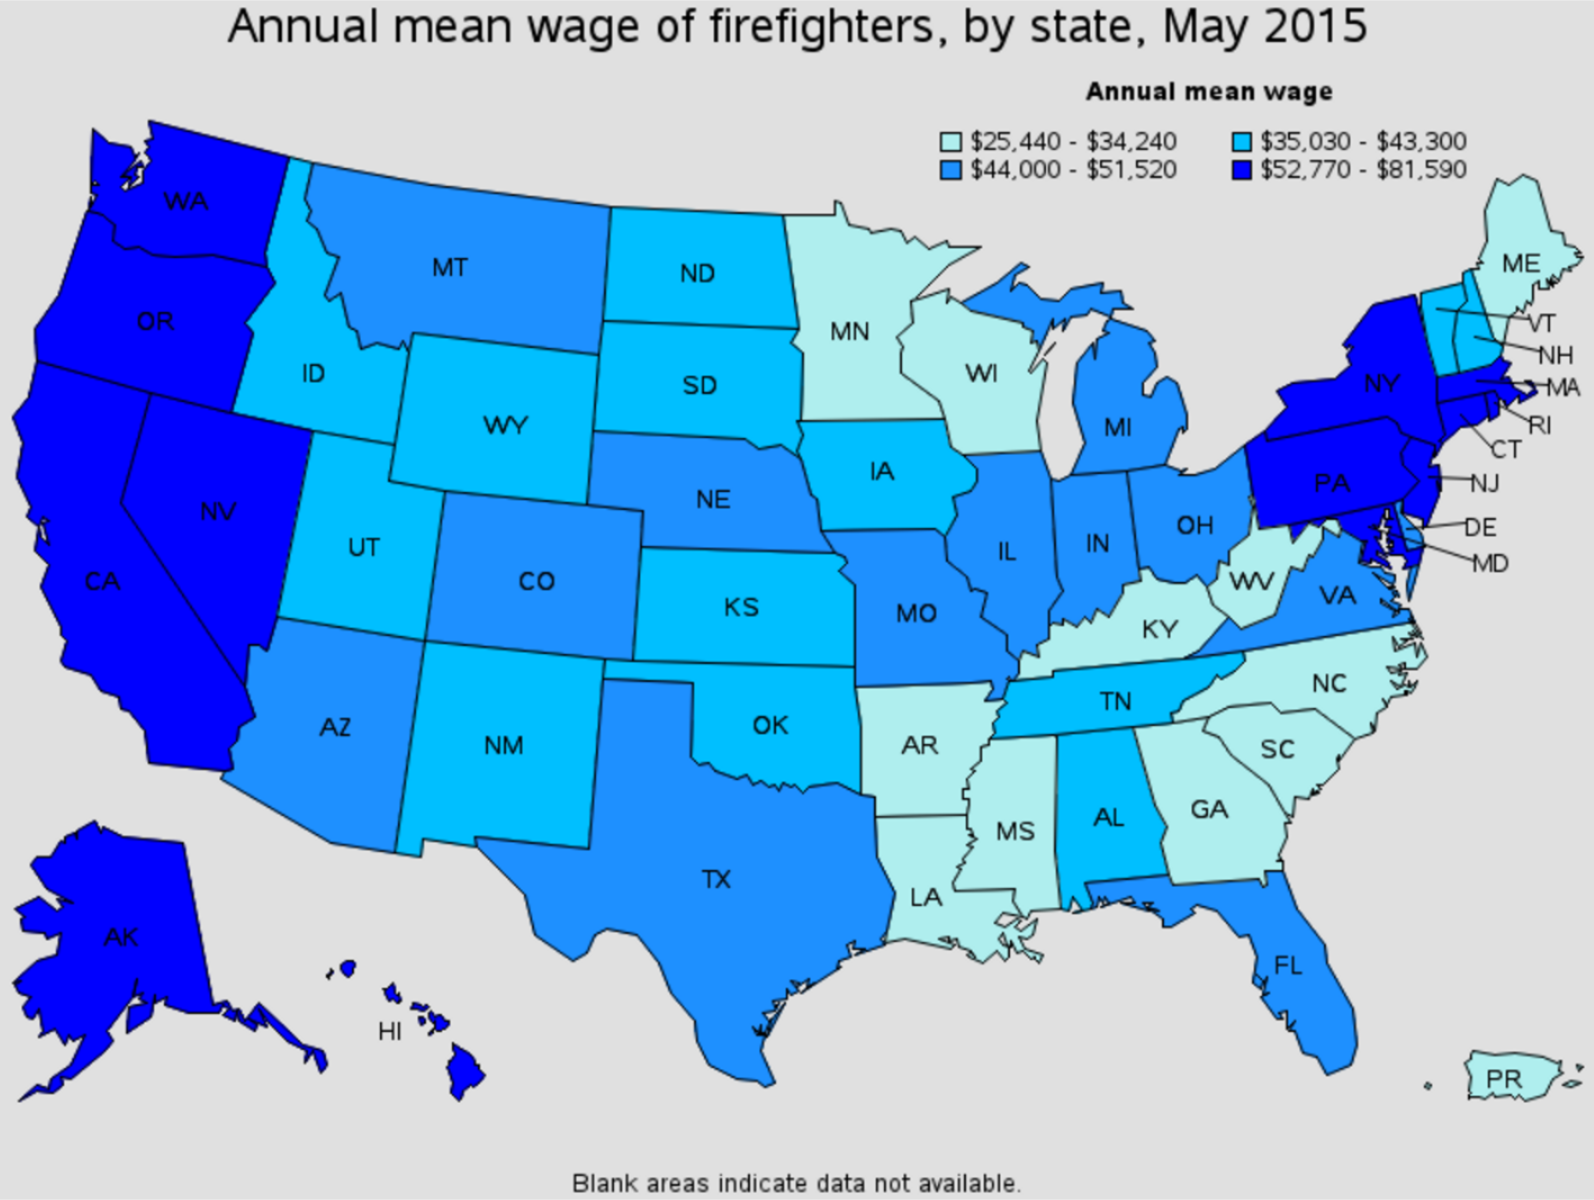 firefighter average salary by state Modesto California